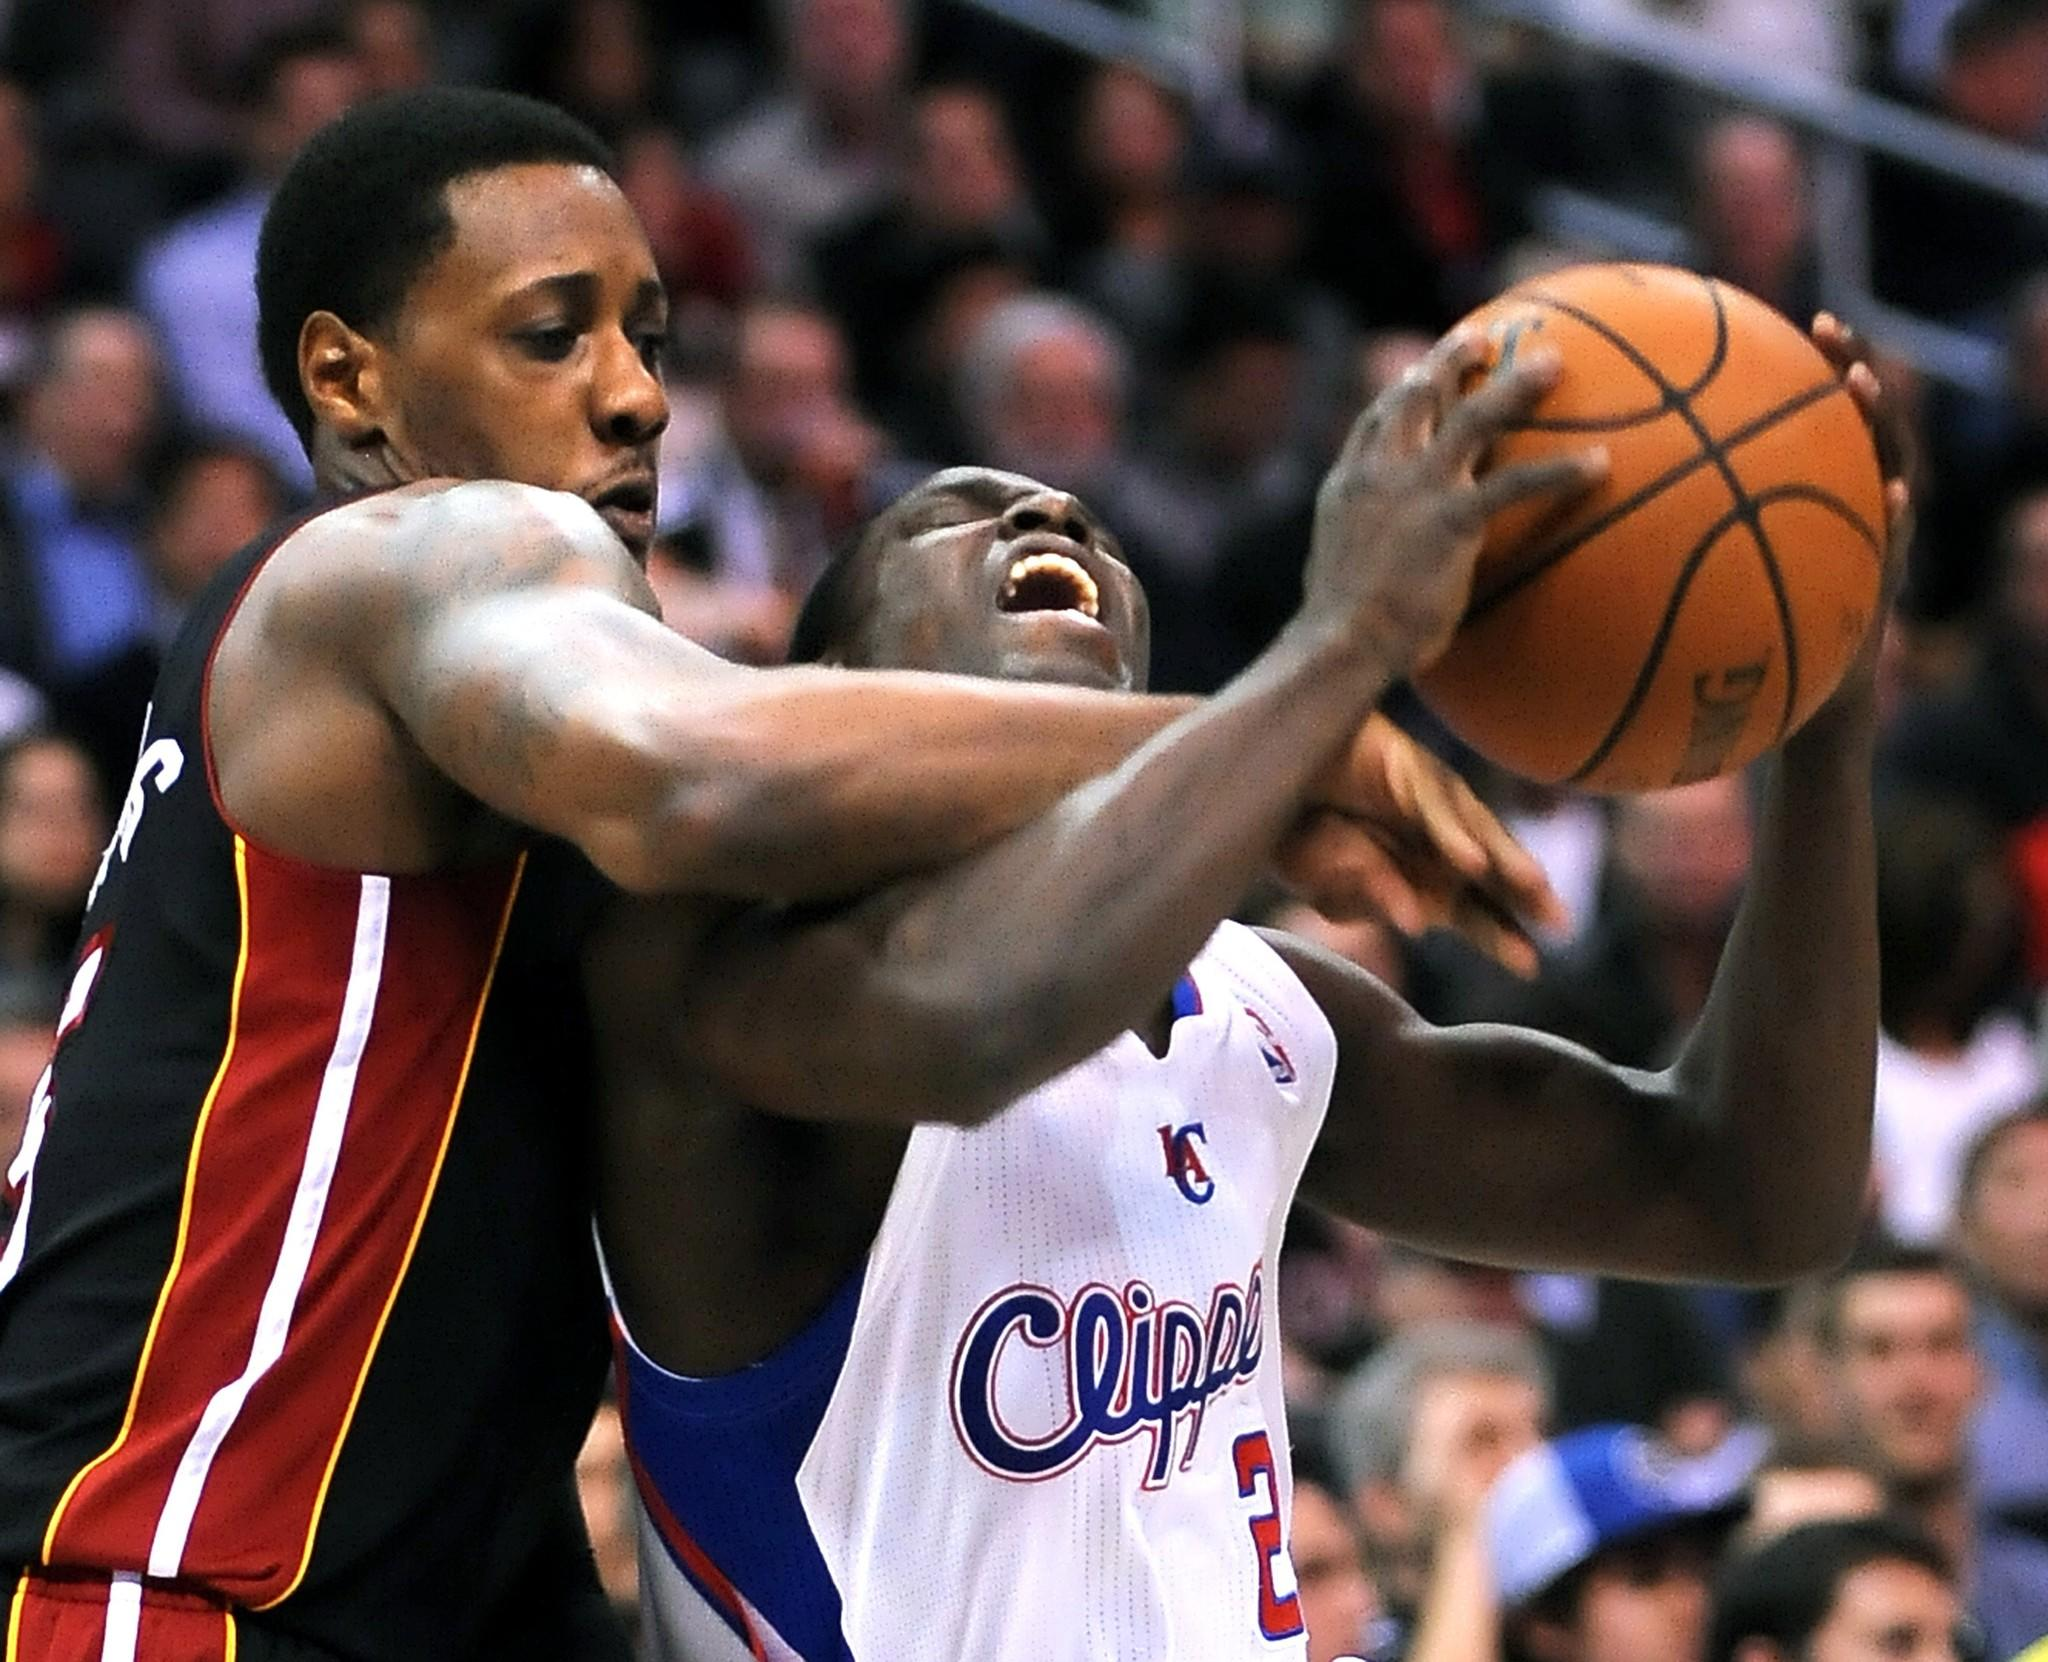 Miami's Mario Chalmers fouls Darren Collison during the Clippers' 116-112 loss Wednesday to the Heat at Staples Center.